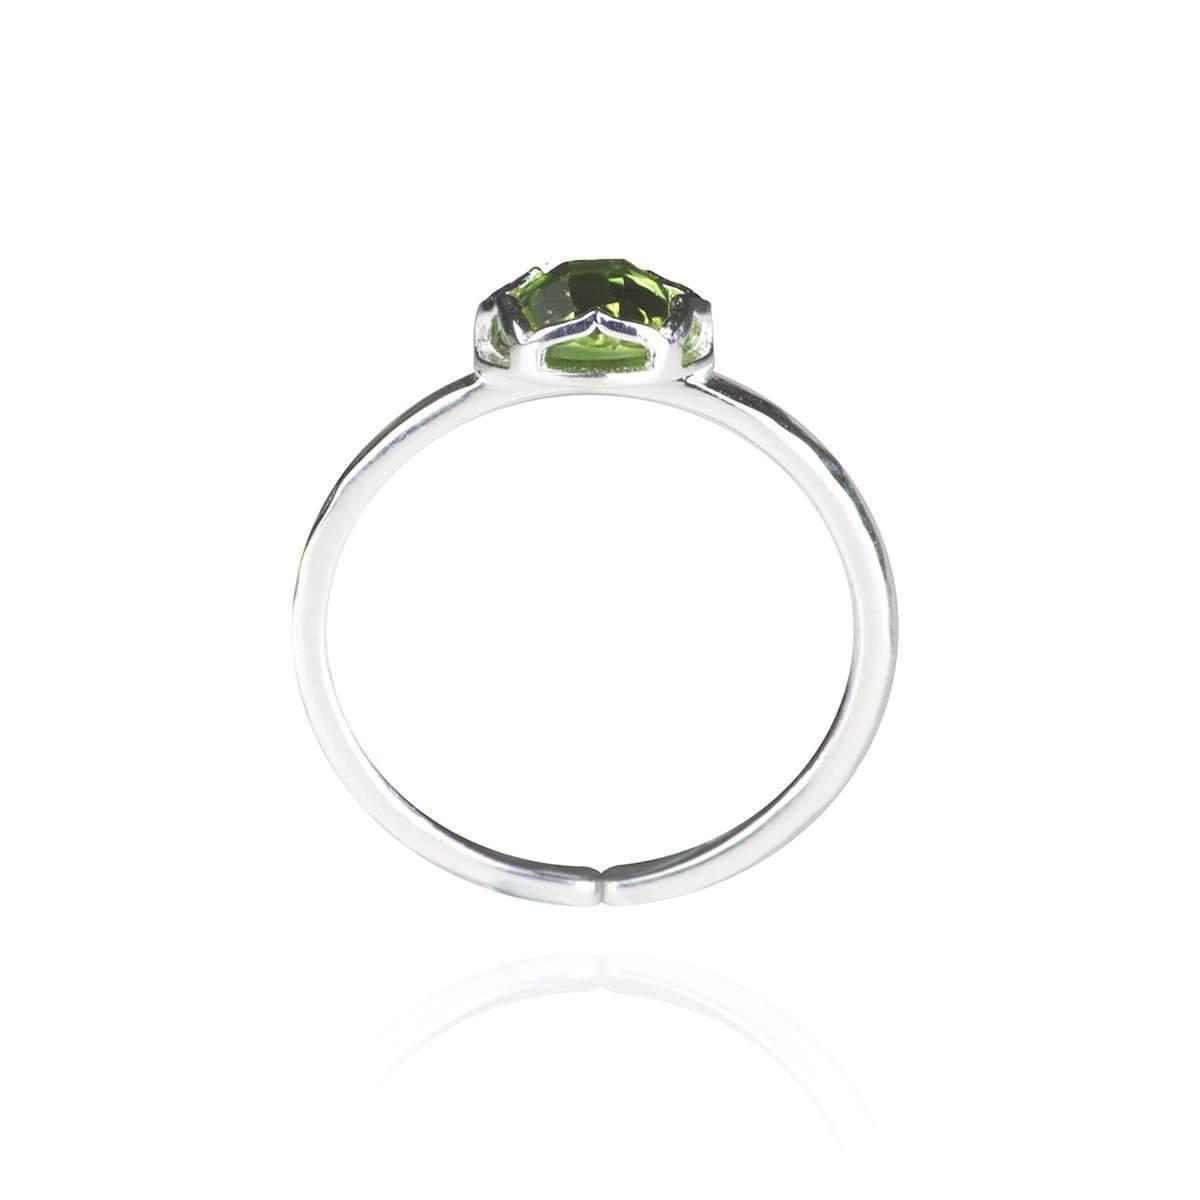 Zefyr Dosha Ring Sterling Silver With Peridot - UK T 1/2 - US 10 - EU 62 1/4 gb7iyCPE